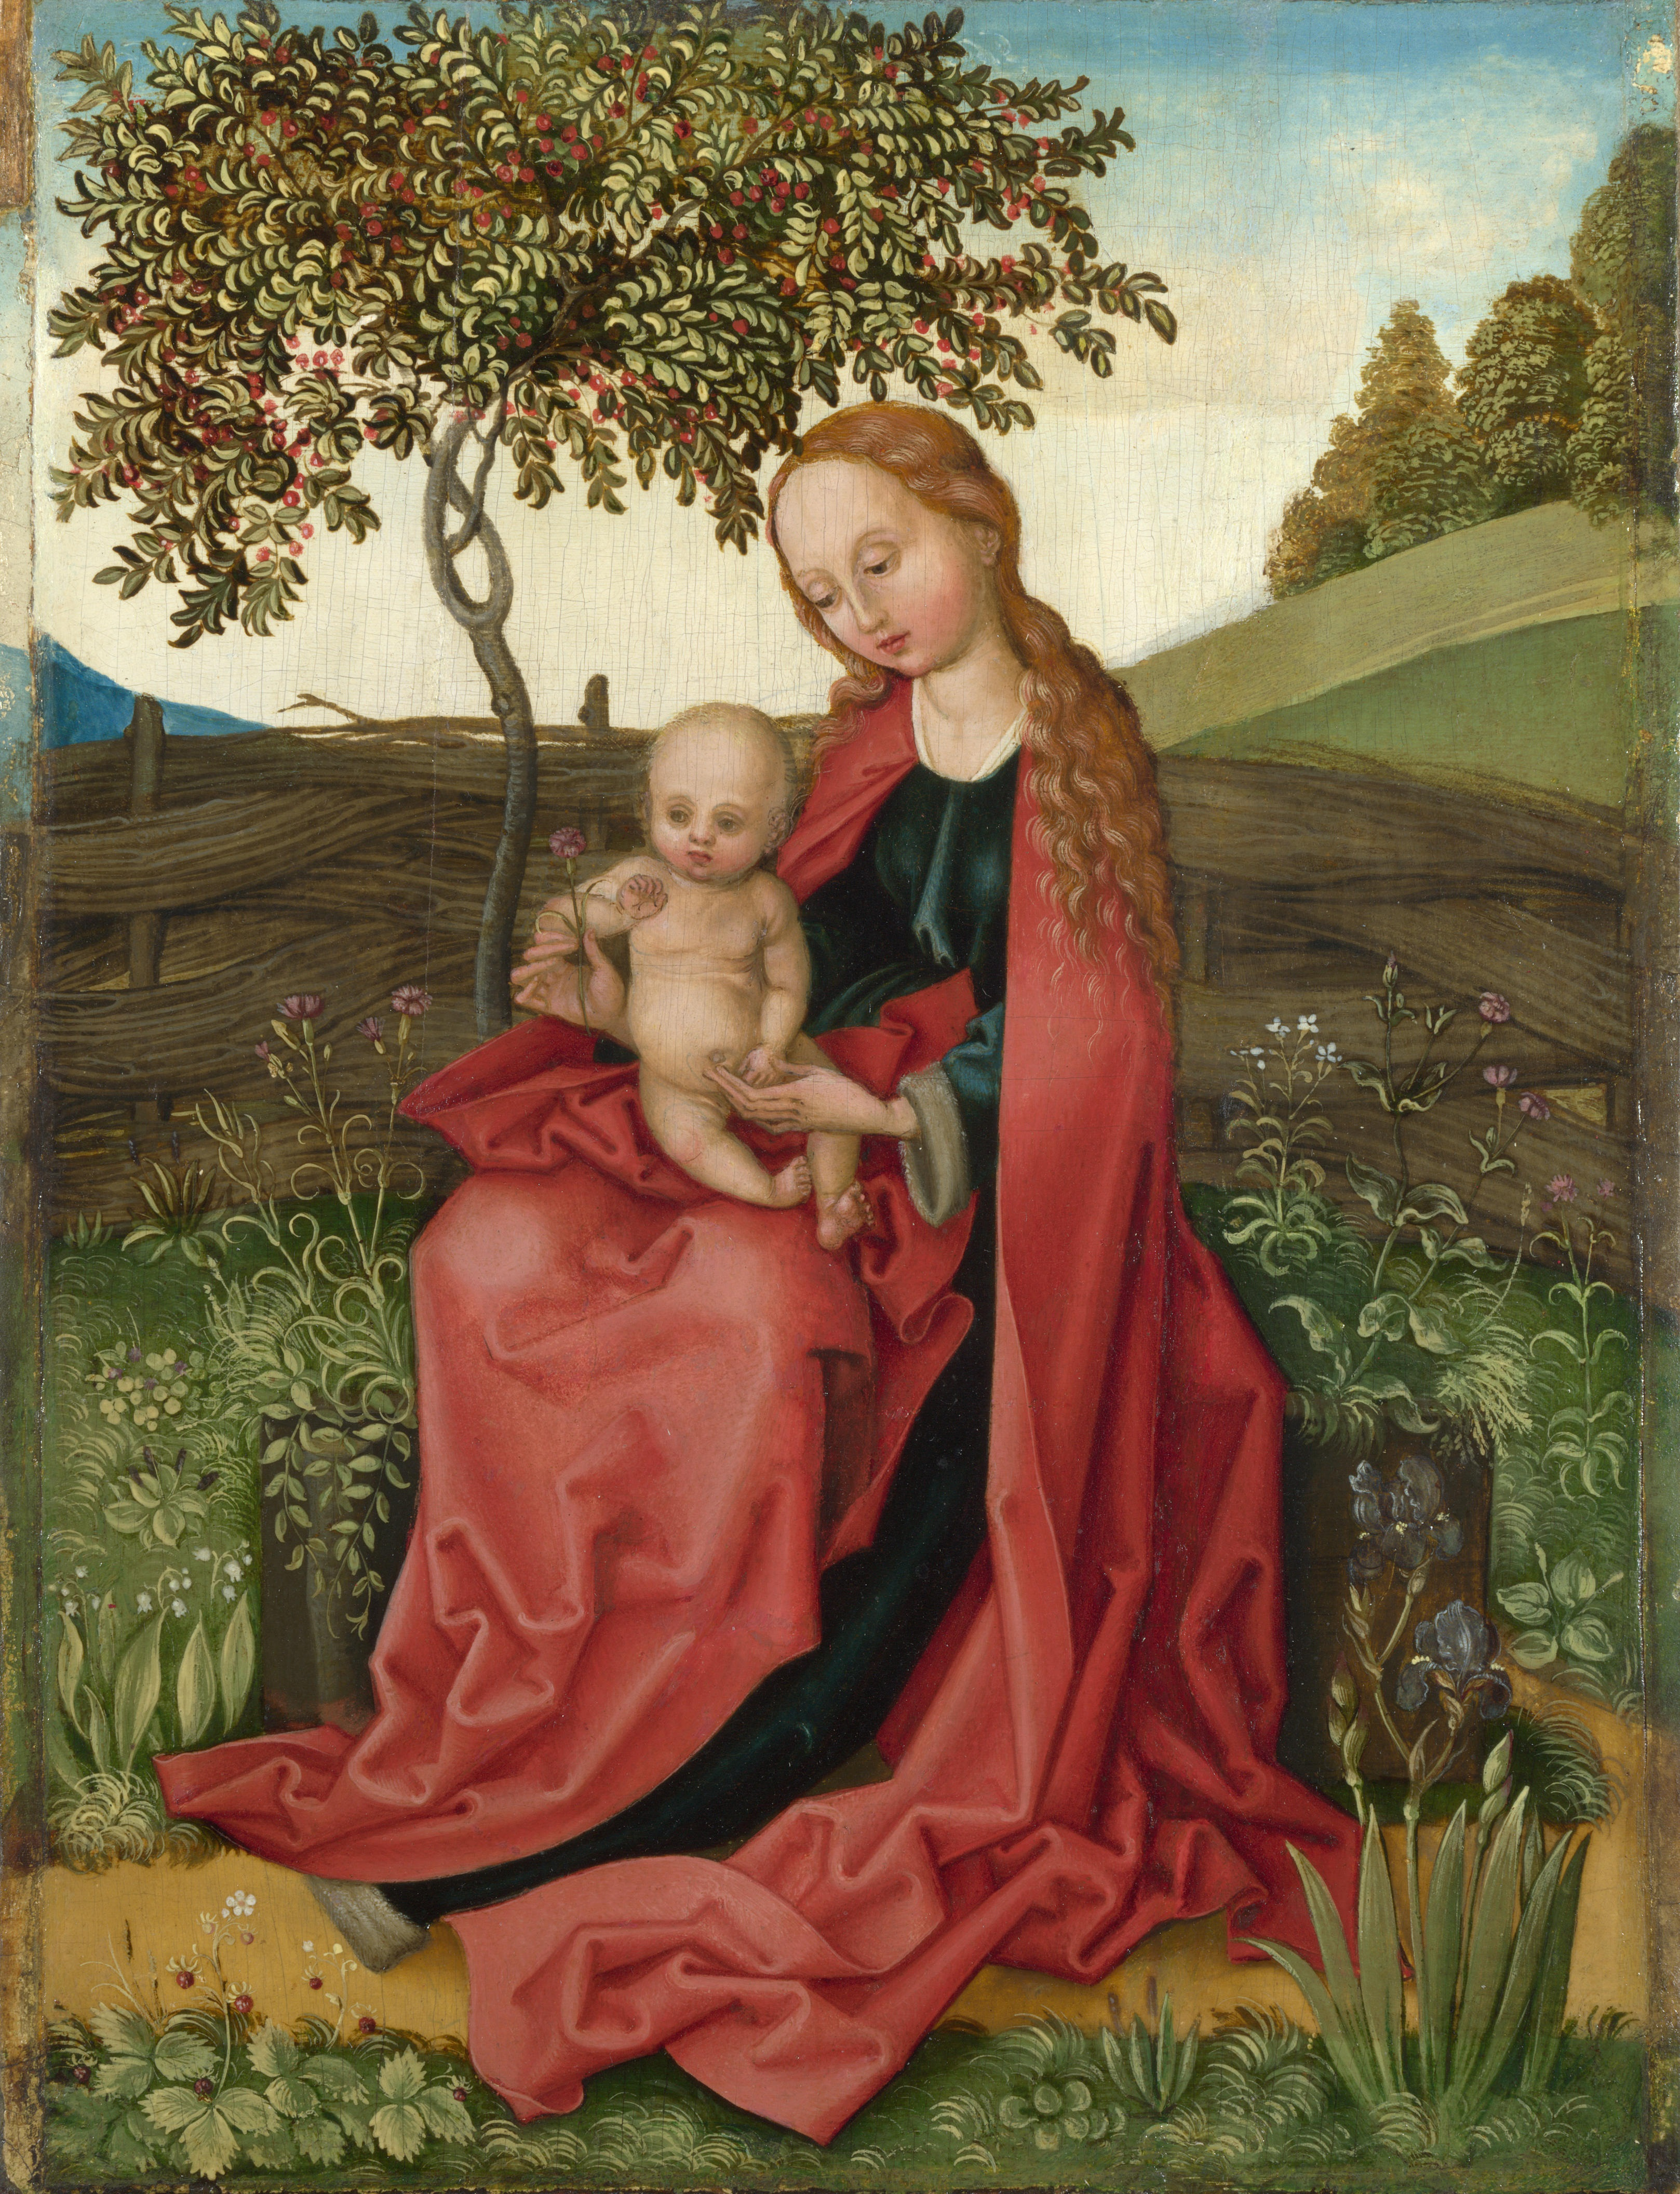 martin_schongauer_-_madonna_und_kind_in_einem_garten_national_gallery_london